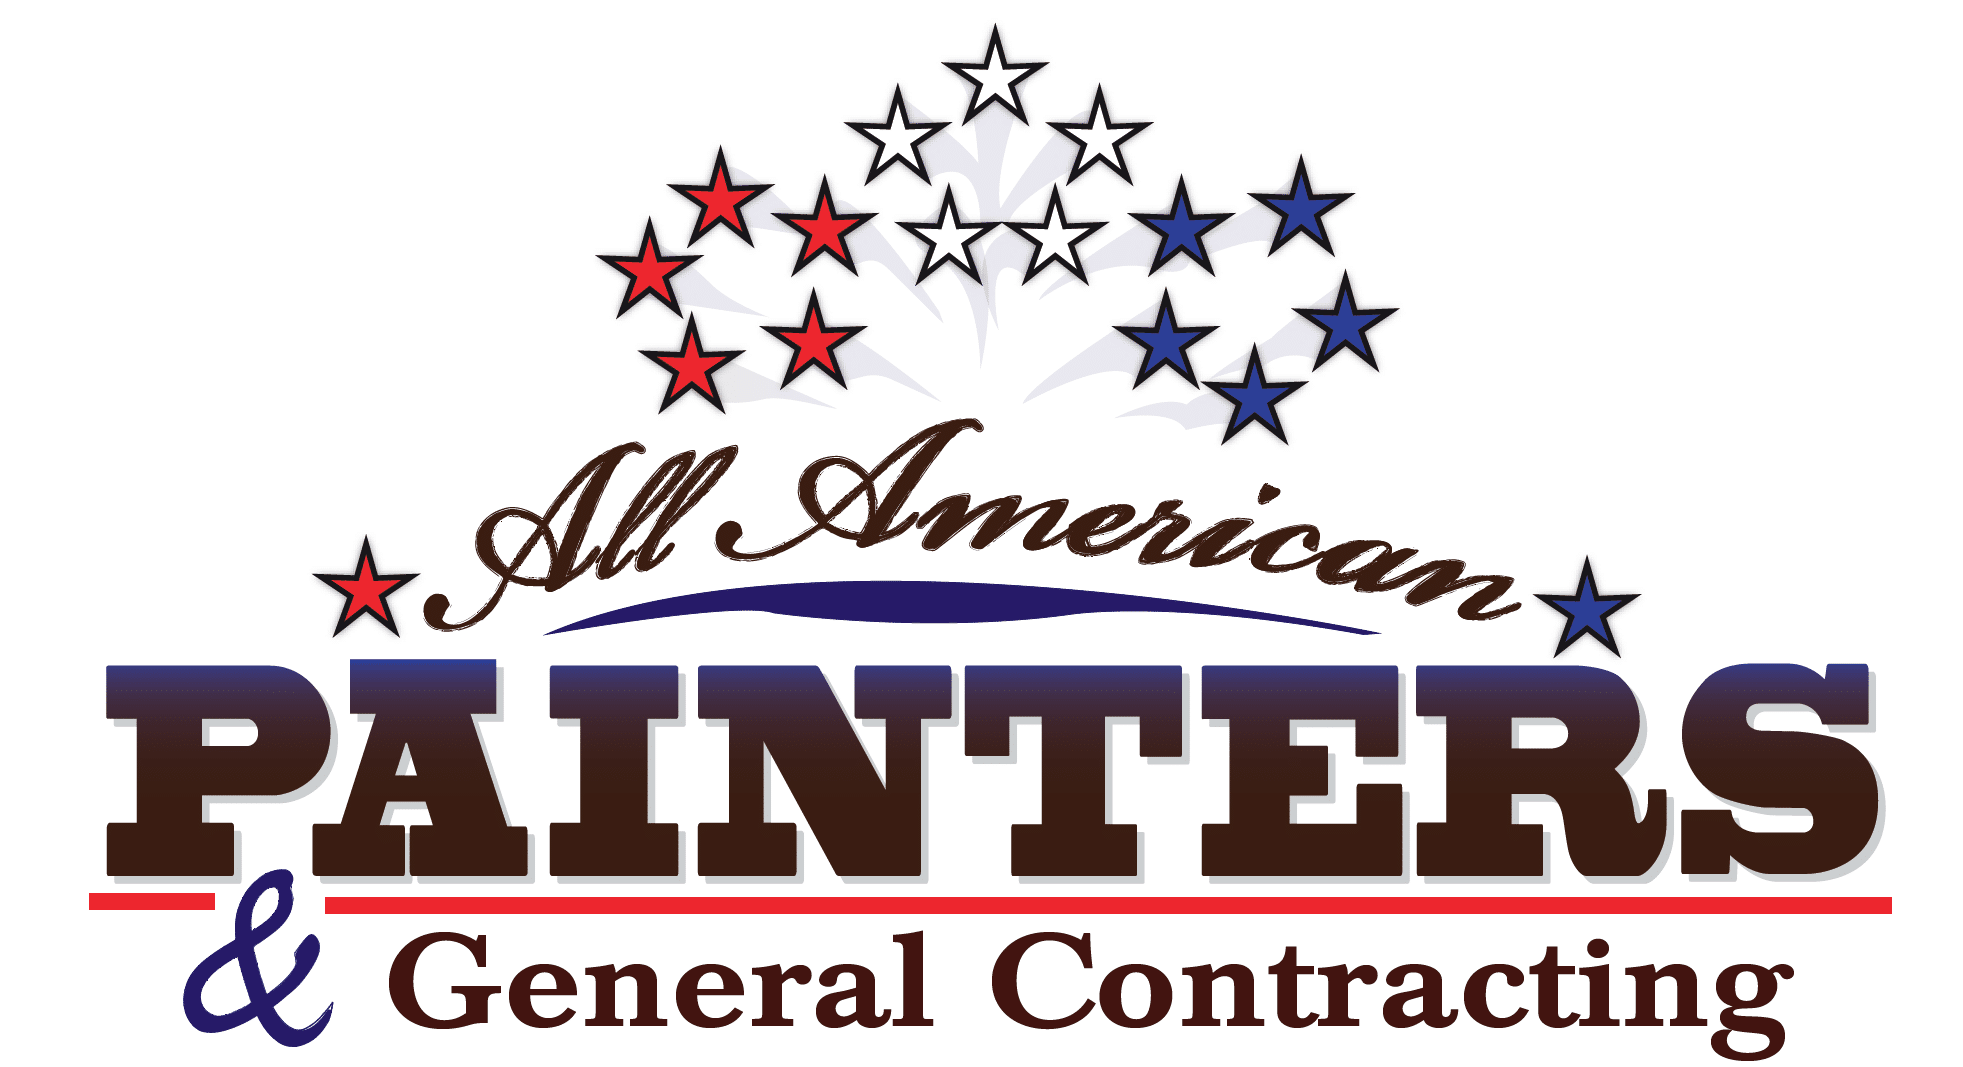 All American Painters & General Contracting